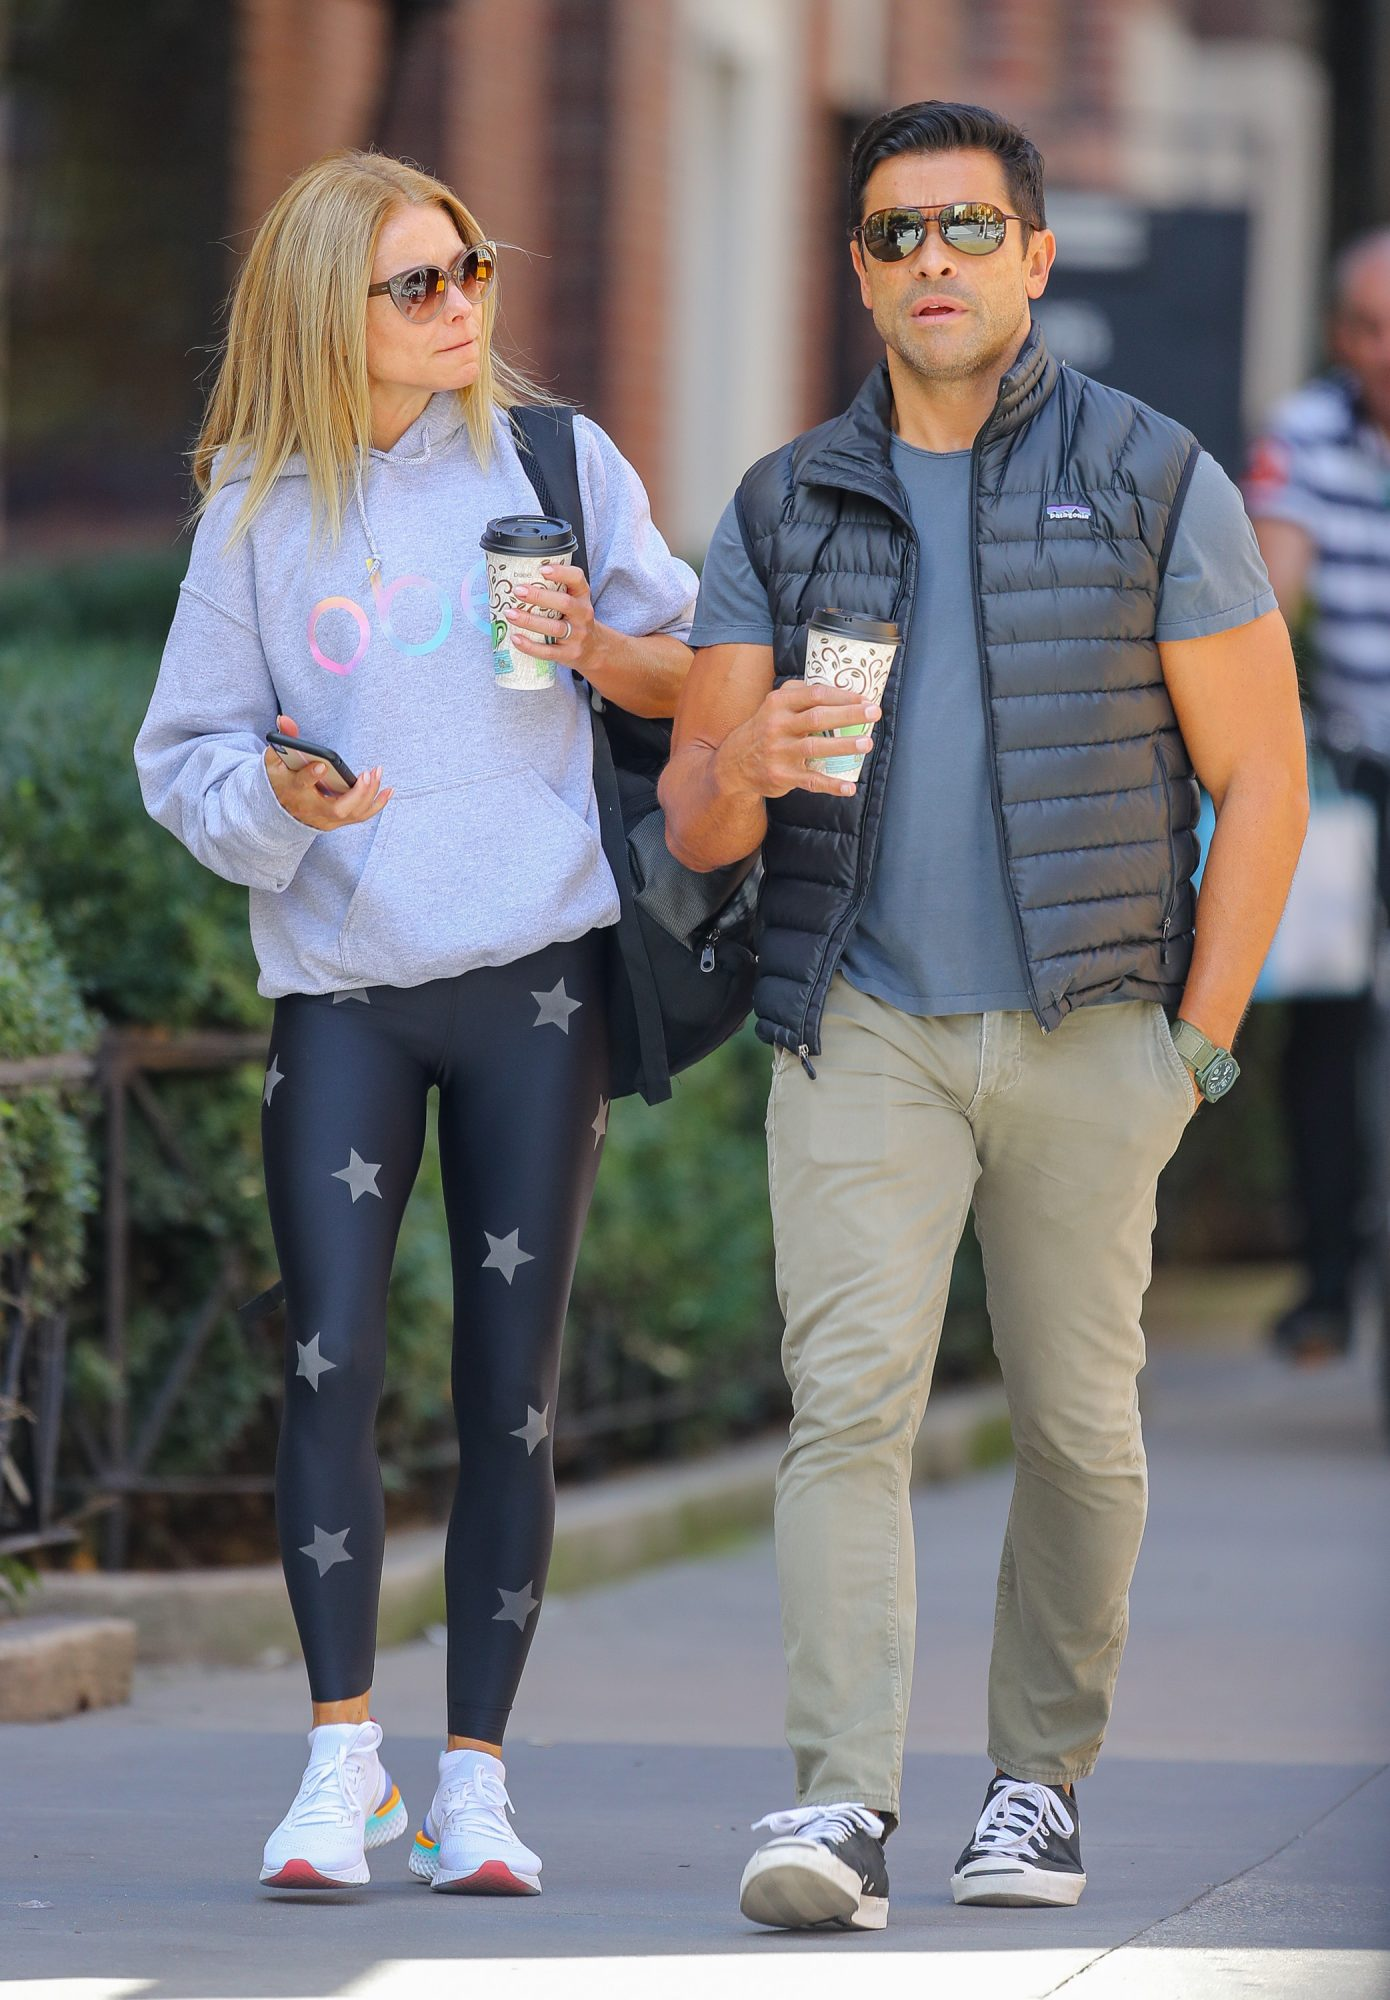 EXCLUSIVE: Kelly Ripa And Mark Consuelos Went For A Coffee Early This Morning While They Were Heading To The Gym In NYC